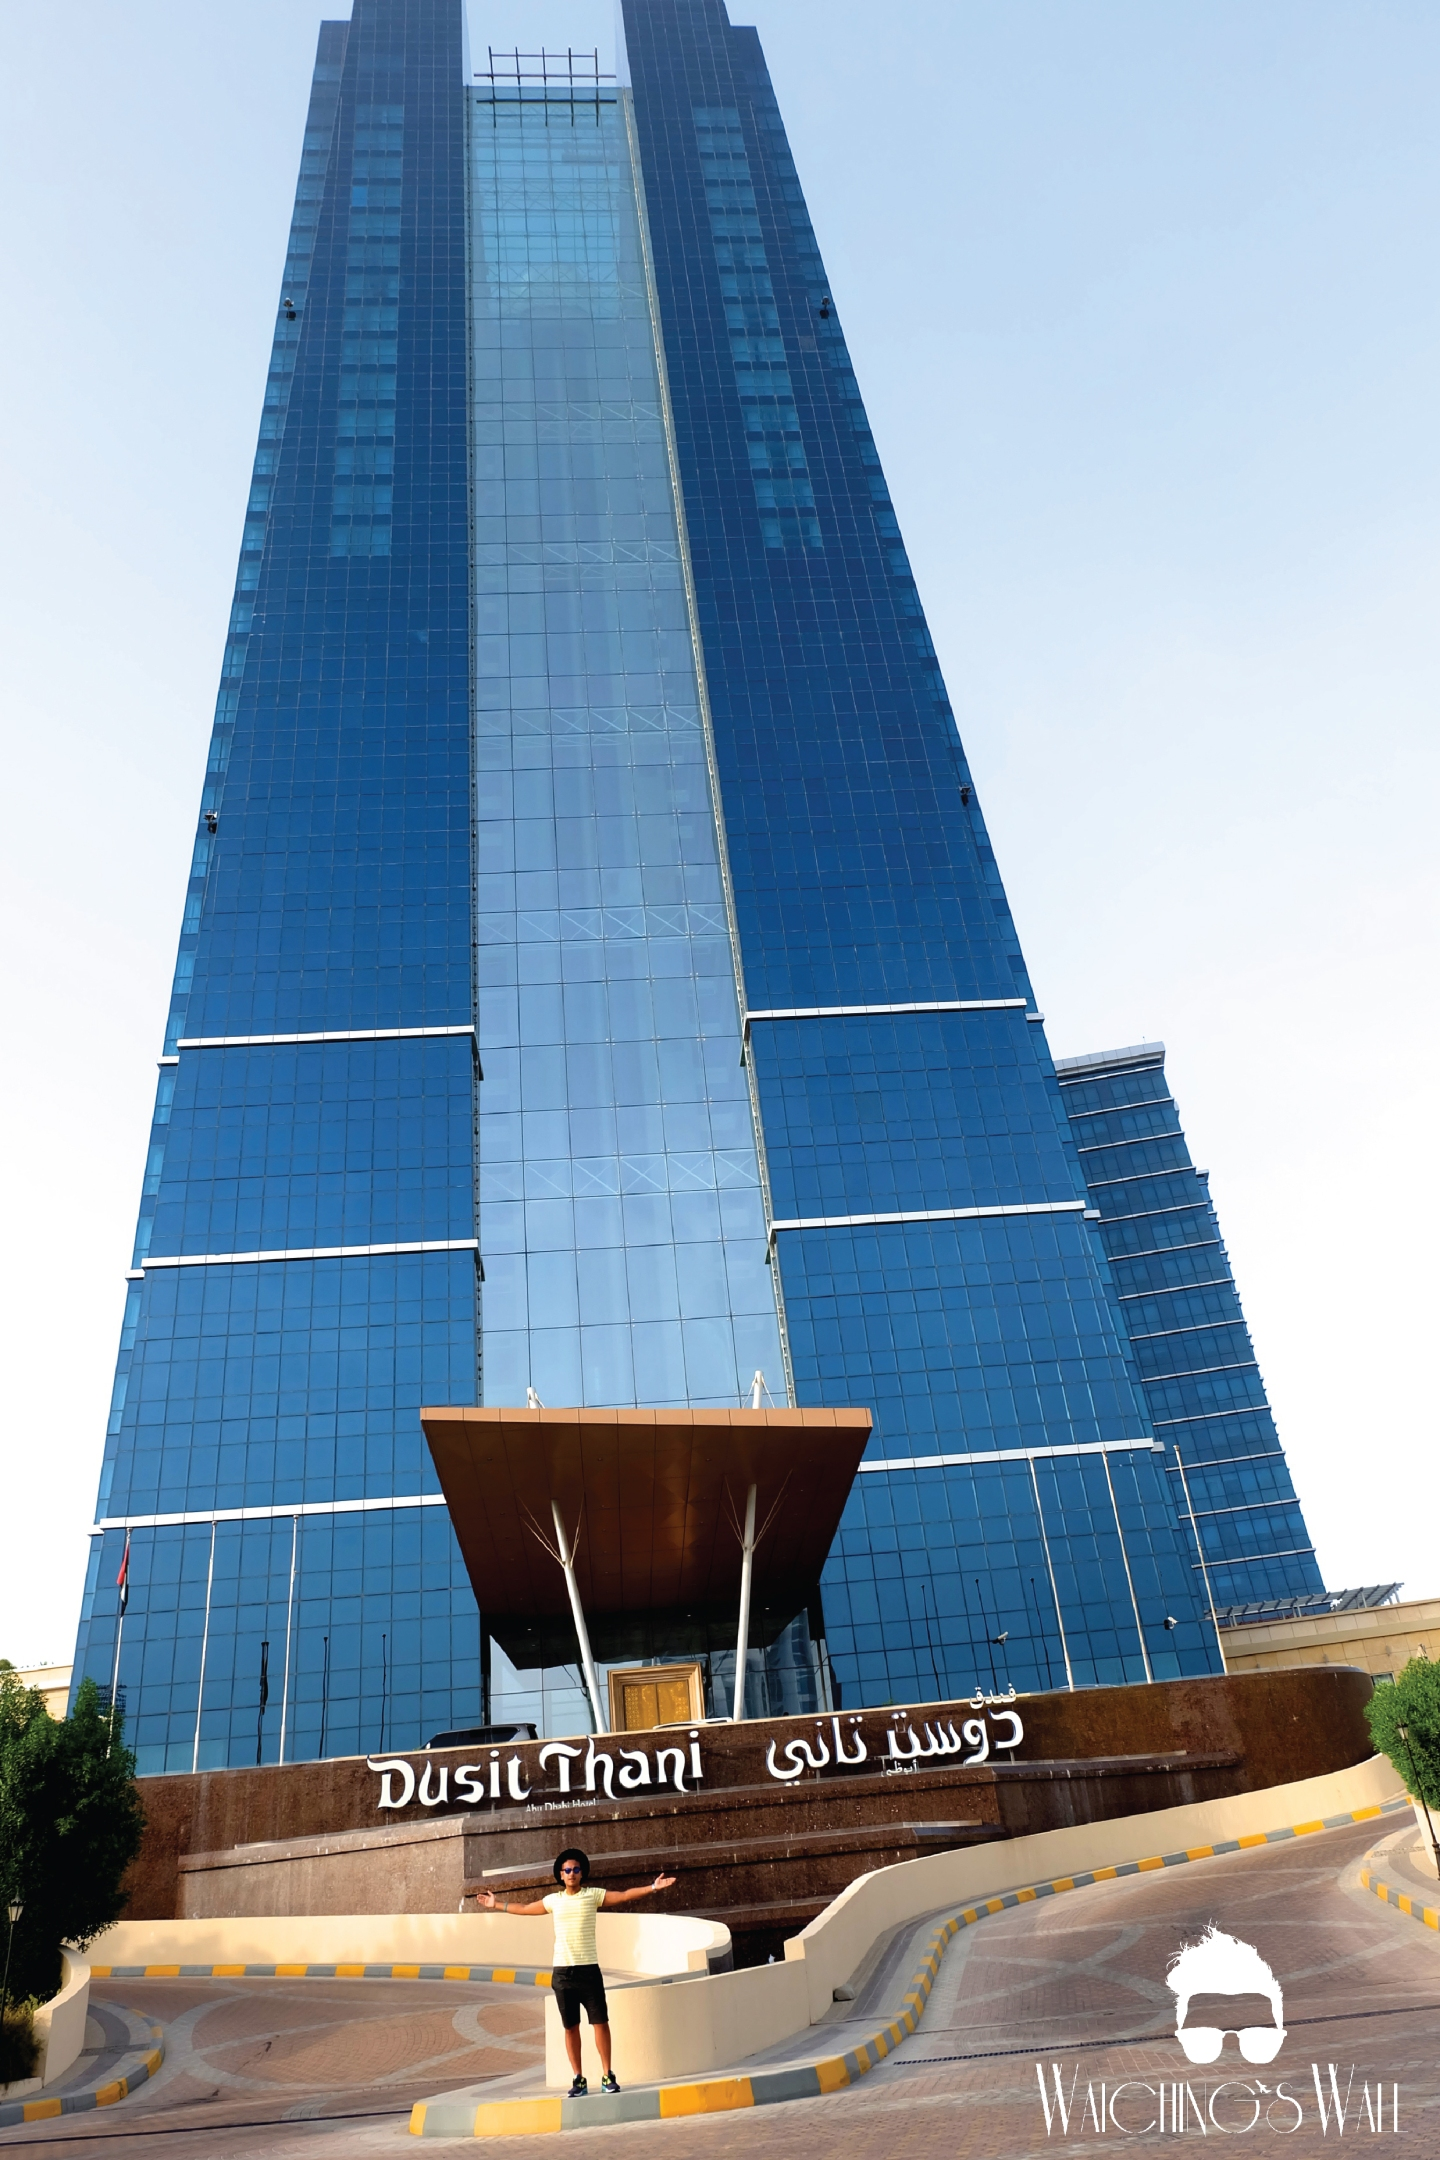 Dusit Thani_Hotel and Welcome_Waiching's Wall-10